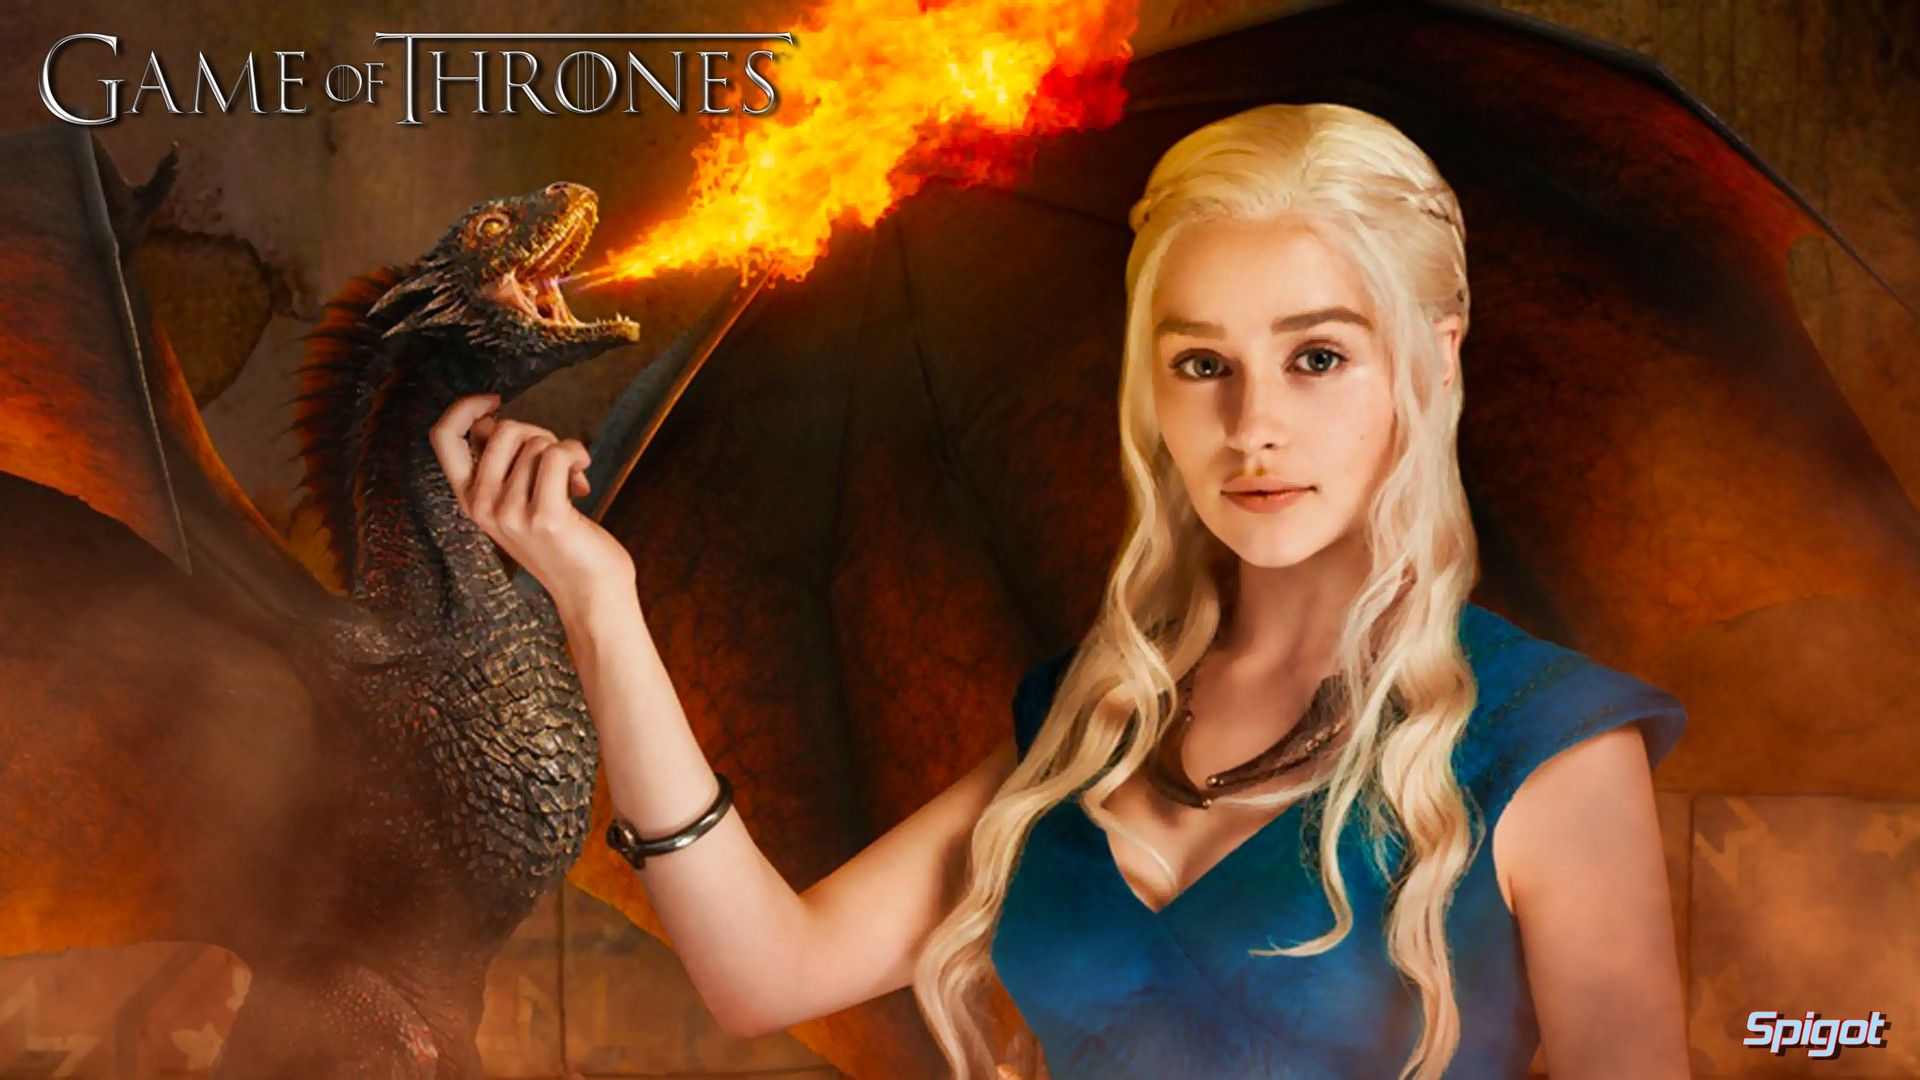 free game of thrones wallpaper, dragons wallpapers free download